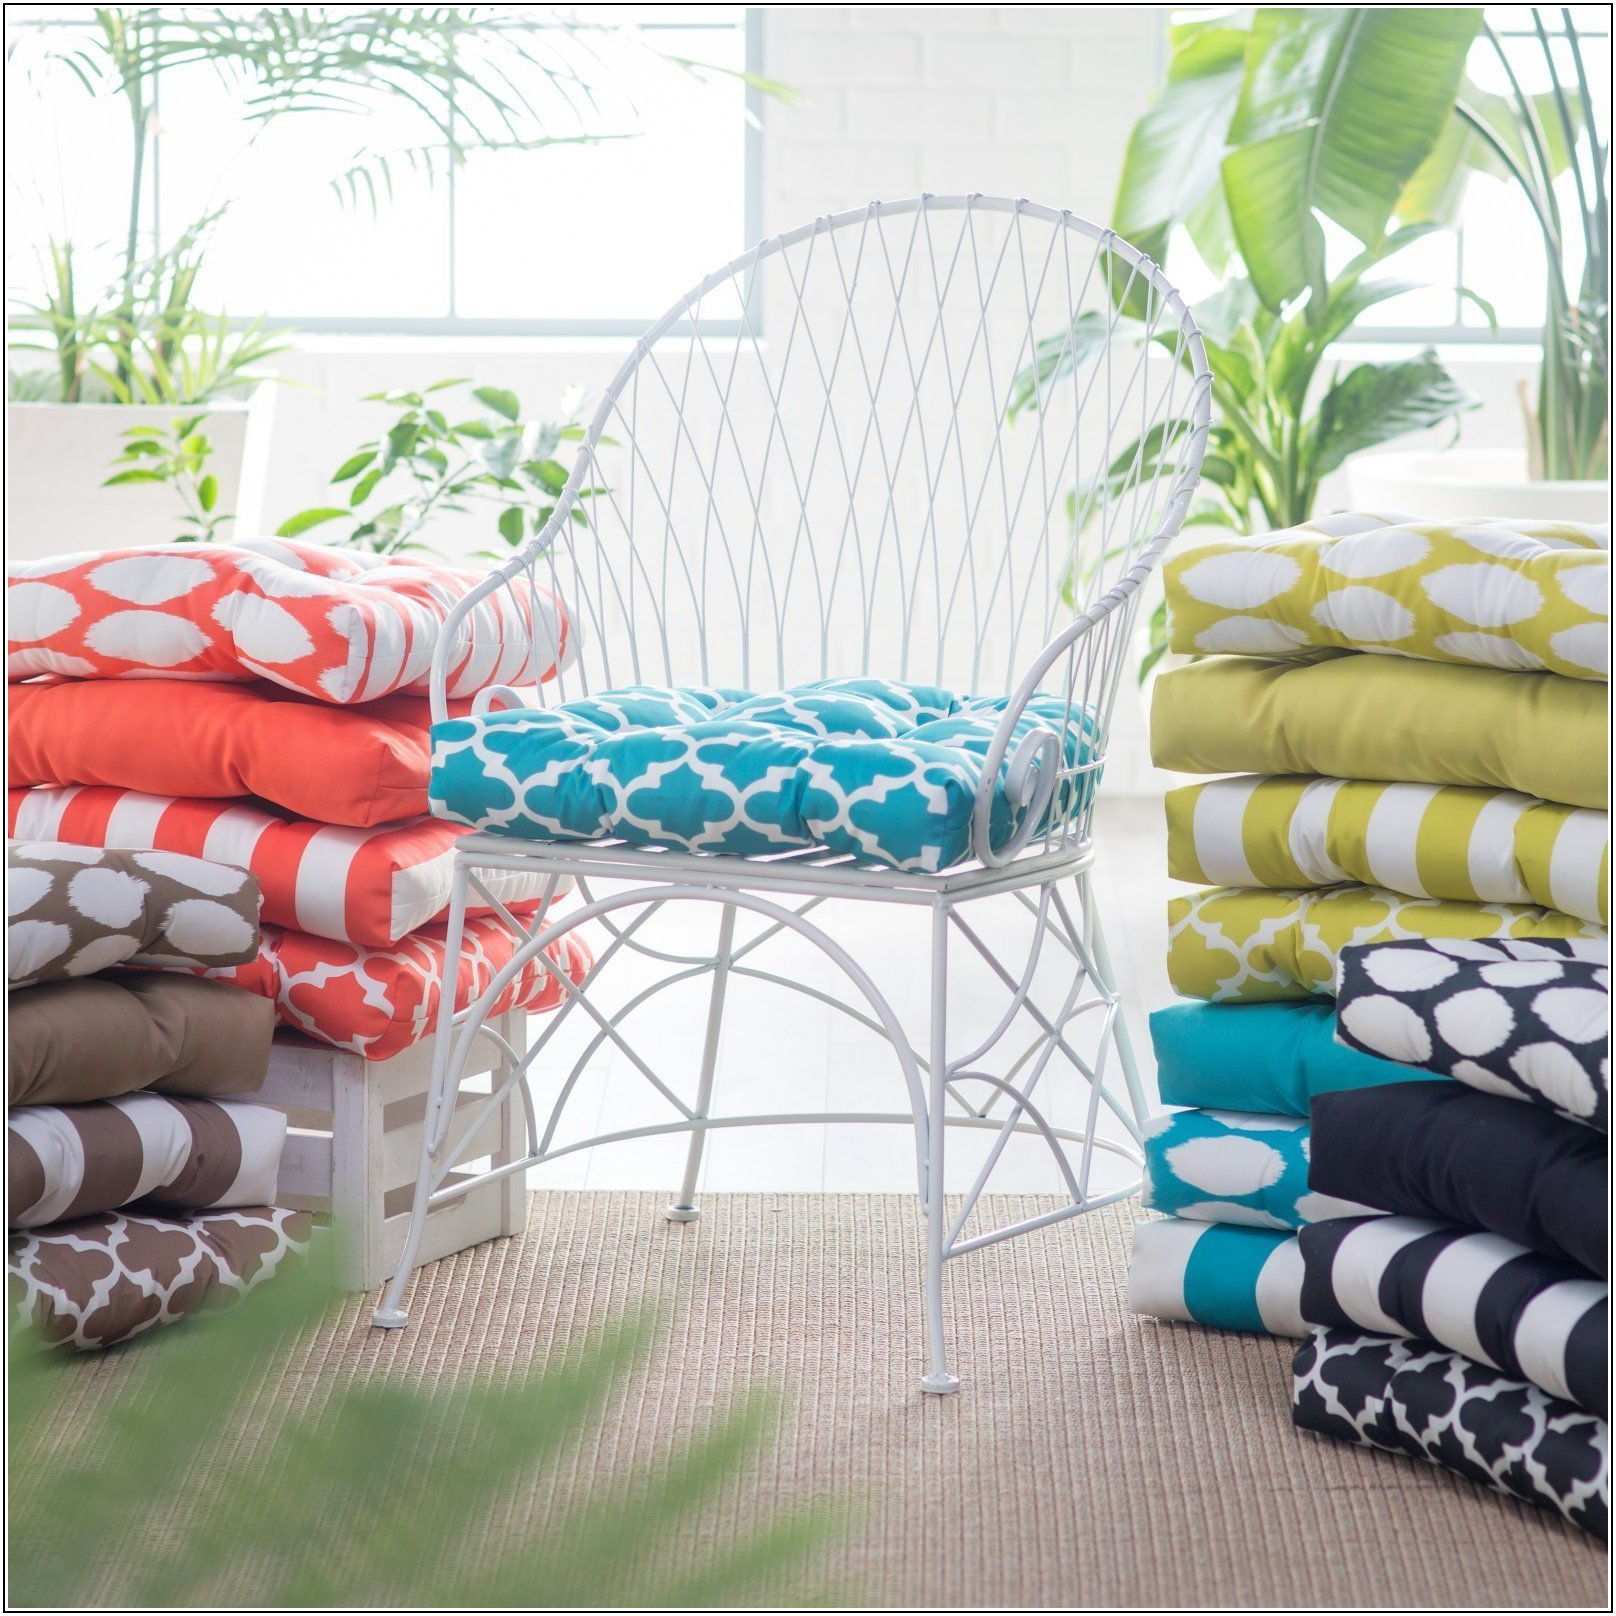 19 X 20 Patio Chair Cushions